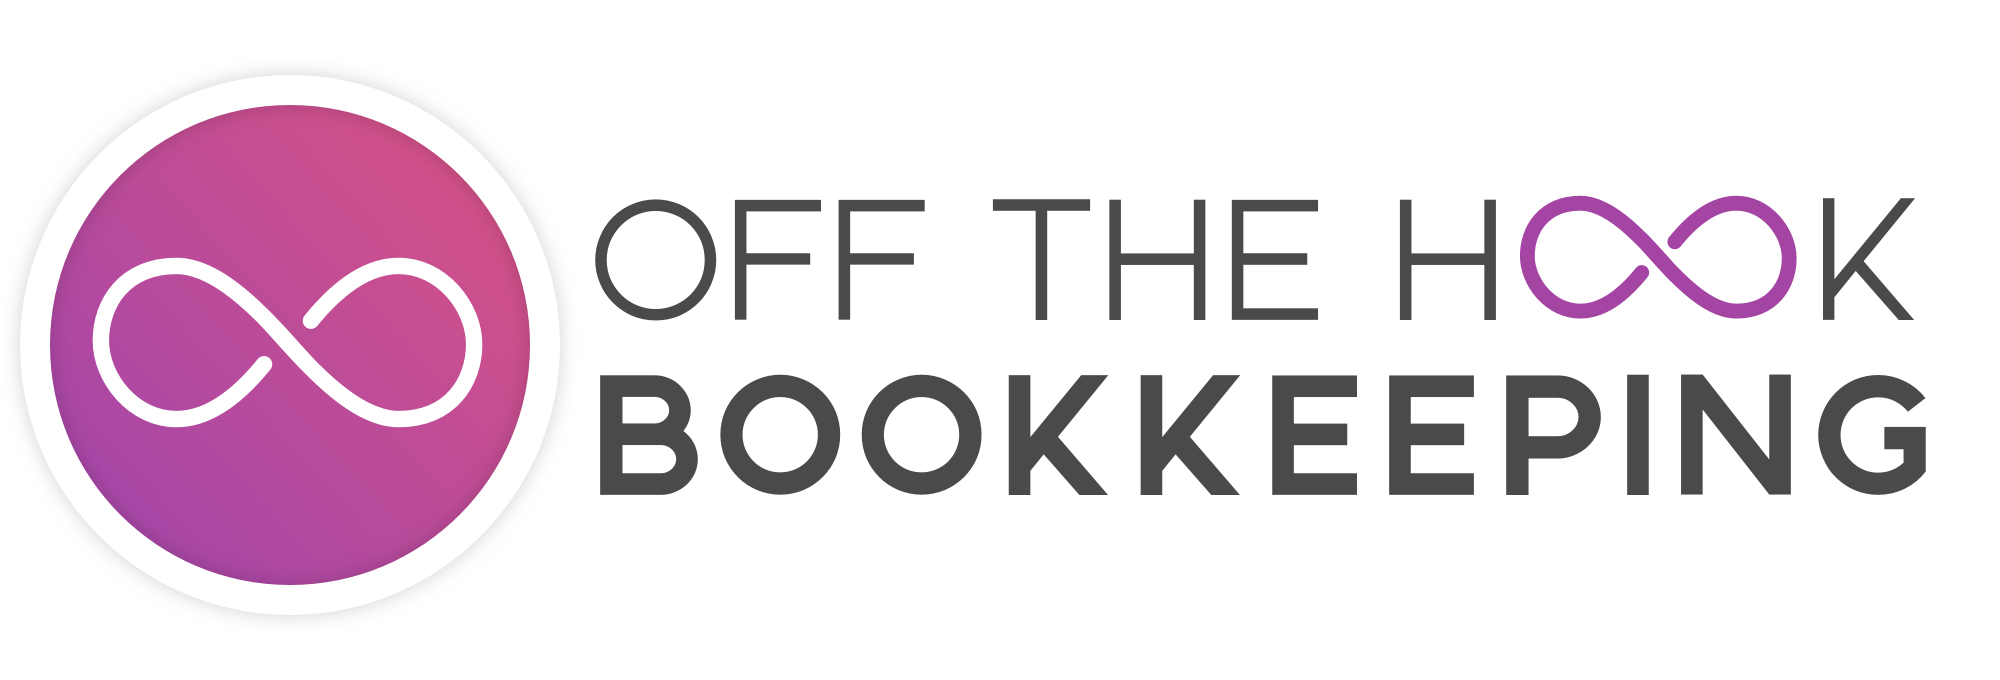 Off The Hook Bookkeeping